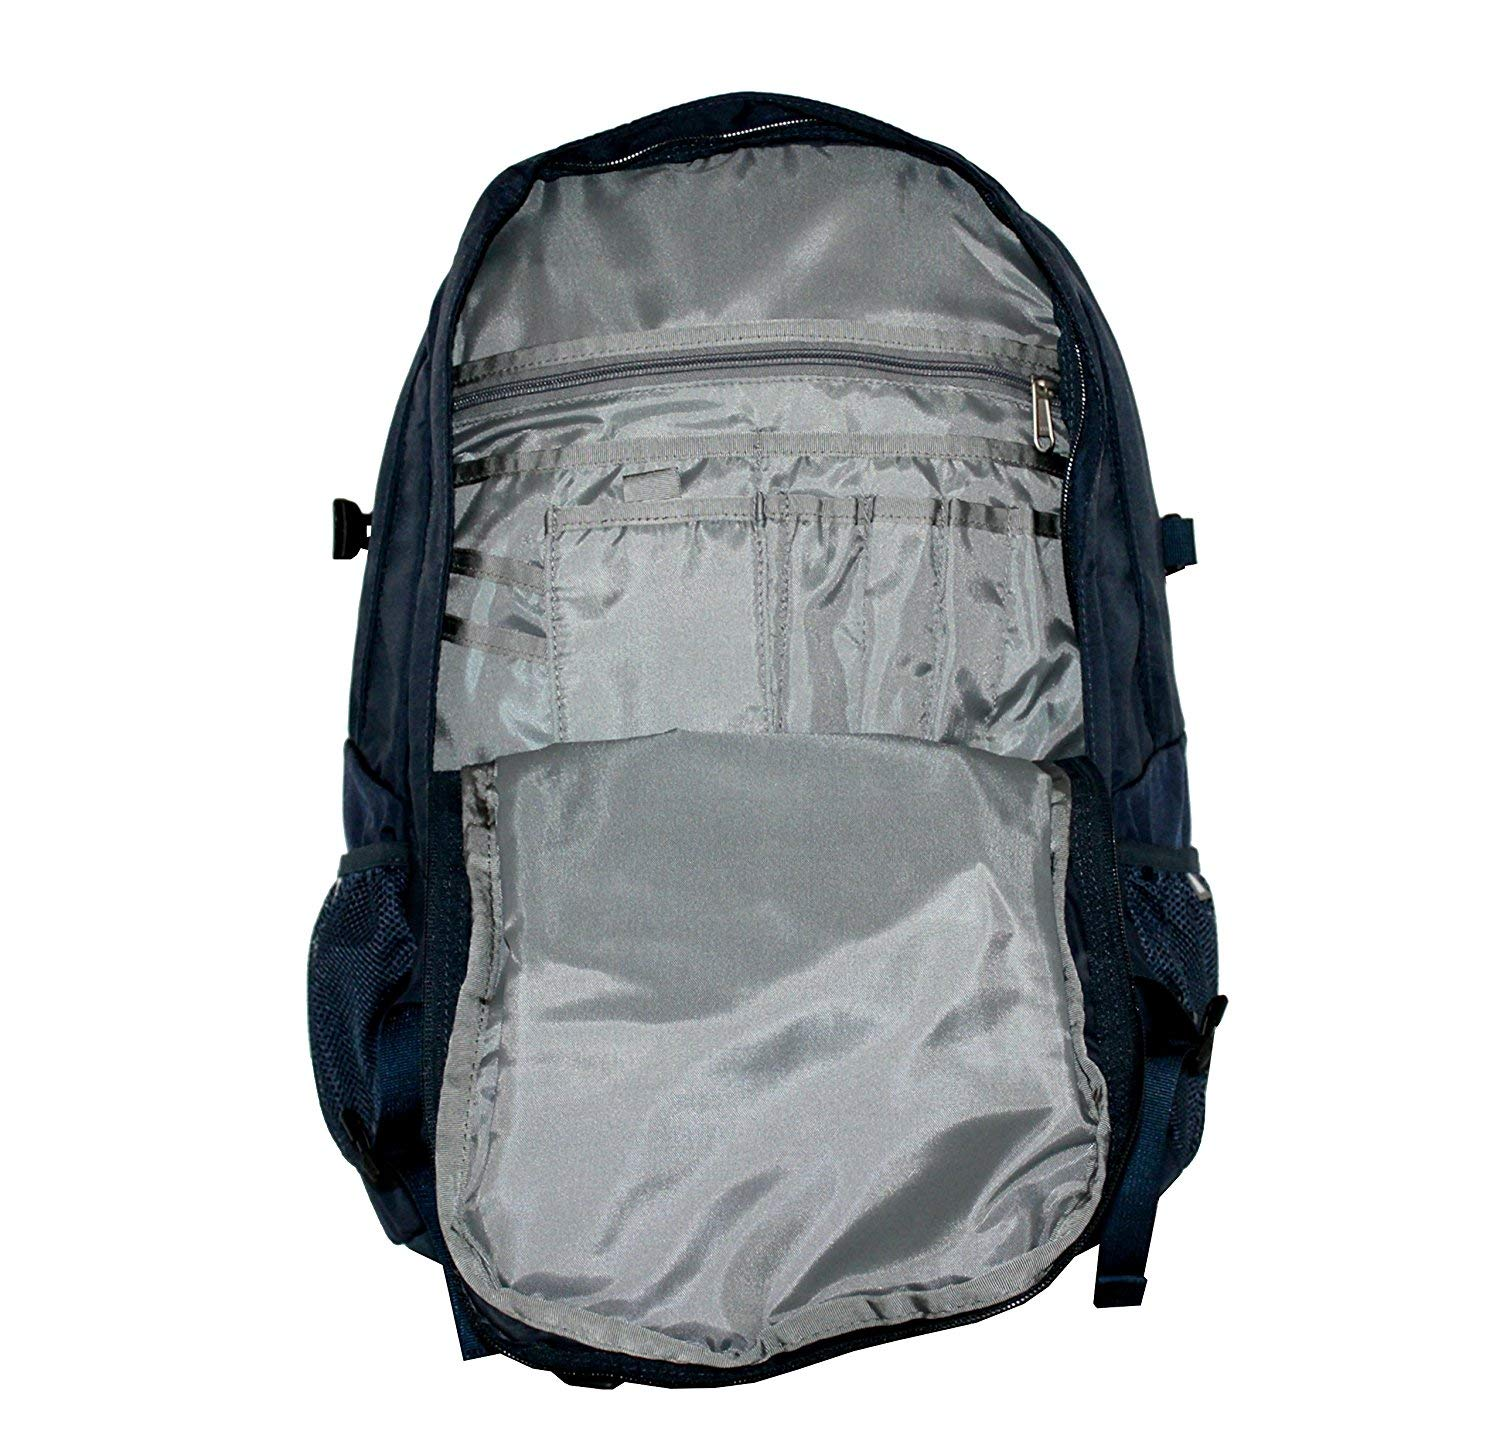 Amazon.com: The North Face Women Classic Borealis Backpack Student School Bag (Urban Navy Pink): Computers & Accessories